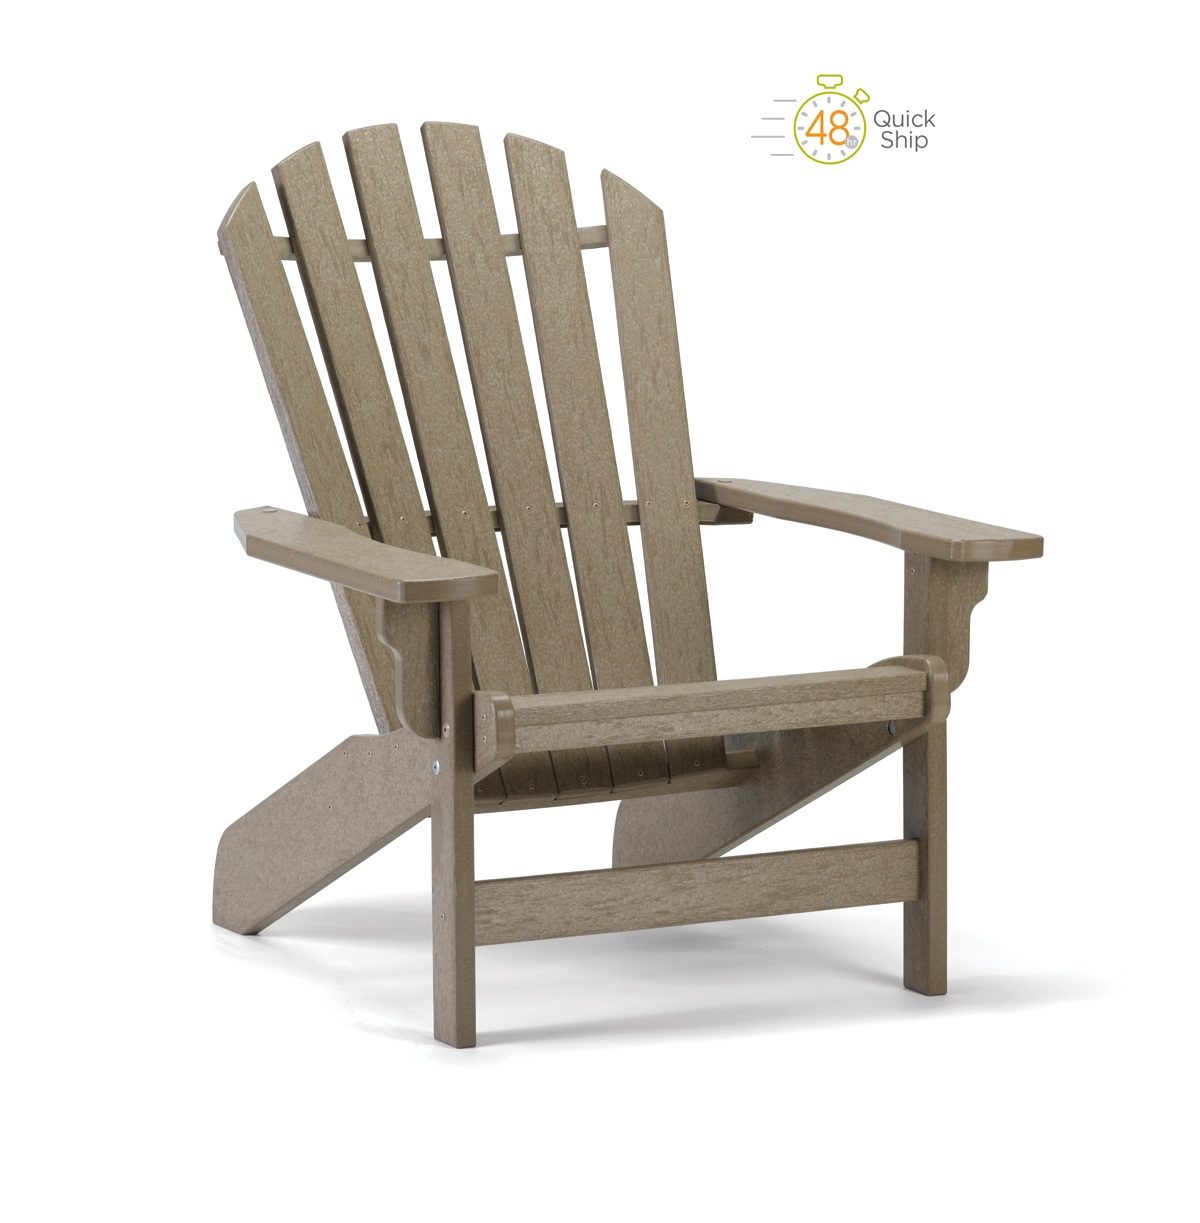 Breezesta Coastal Adirondack Chair - Adirondack Collection - Breezesta -  Collections